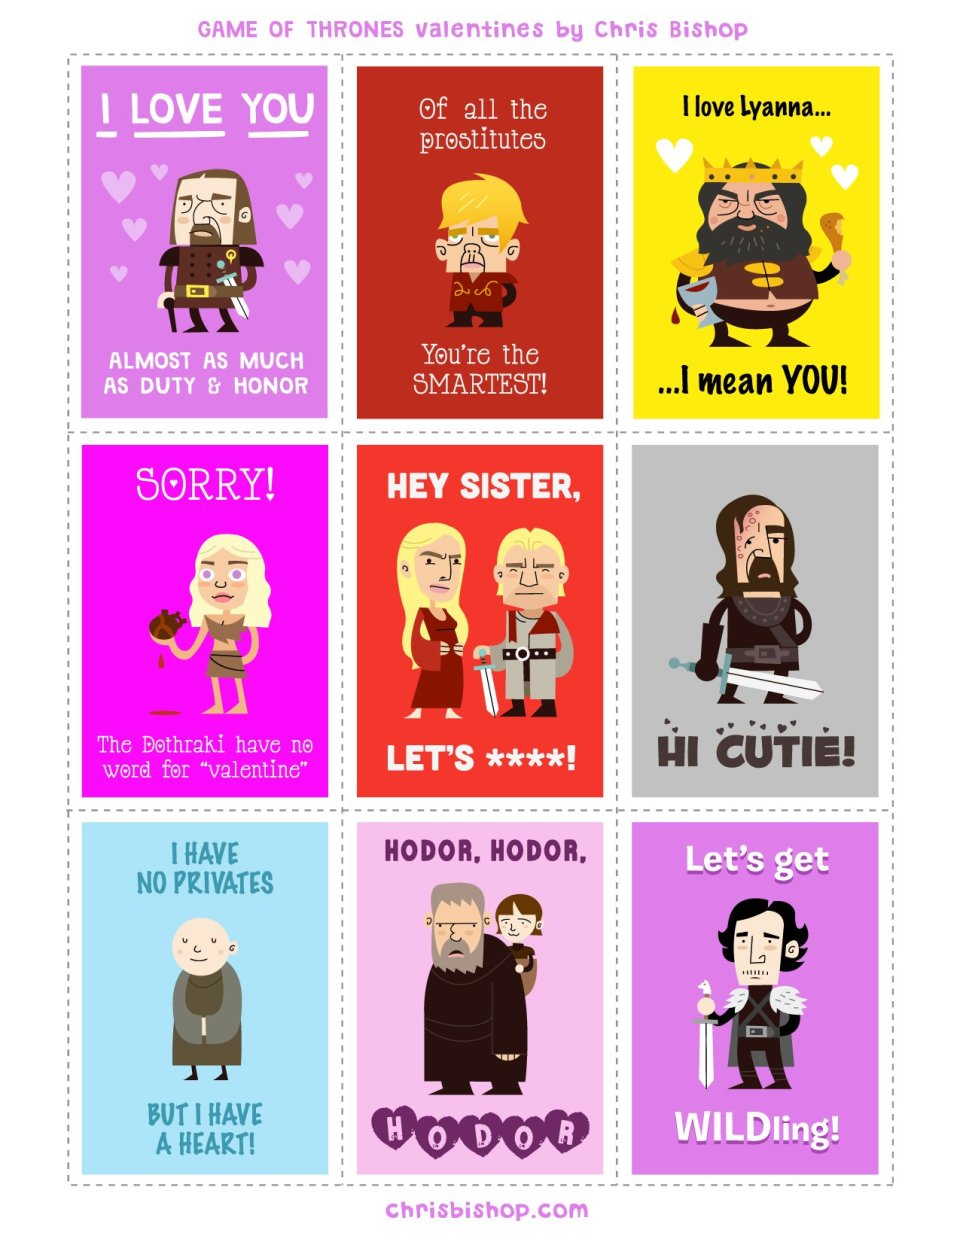 Game of Thrones Valentines card